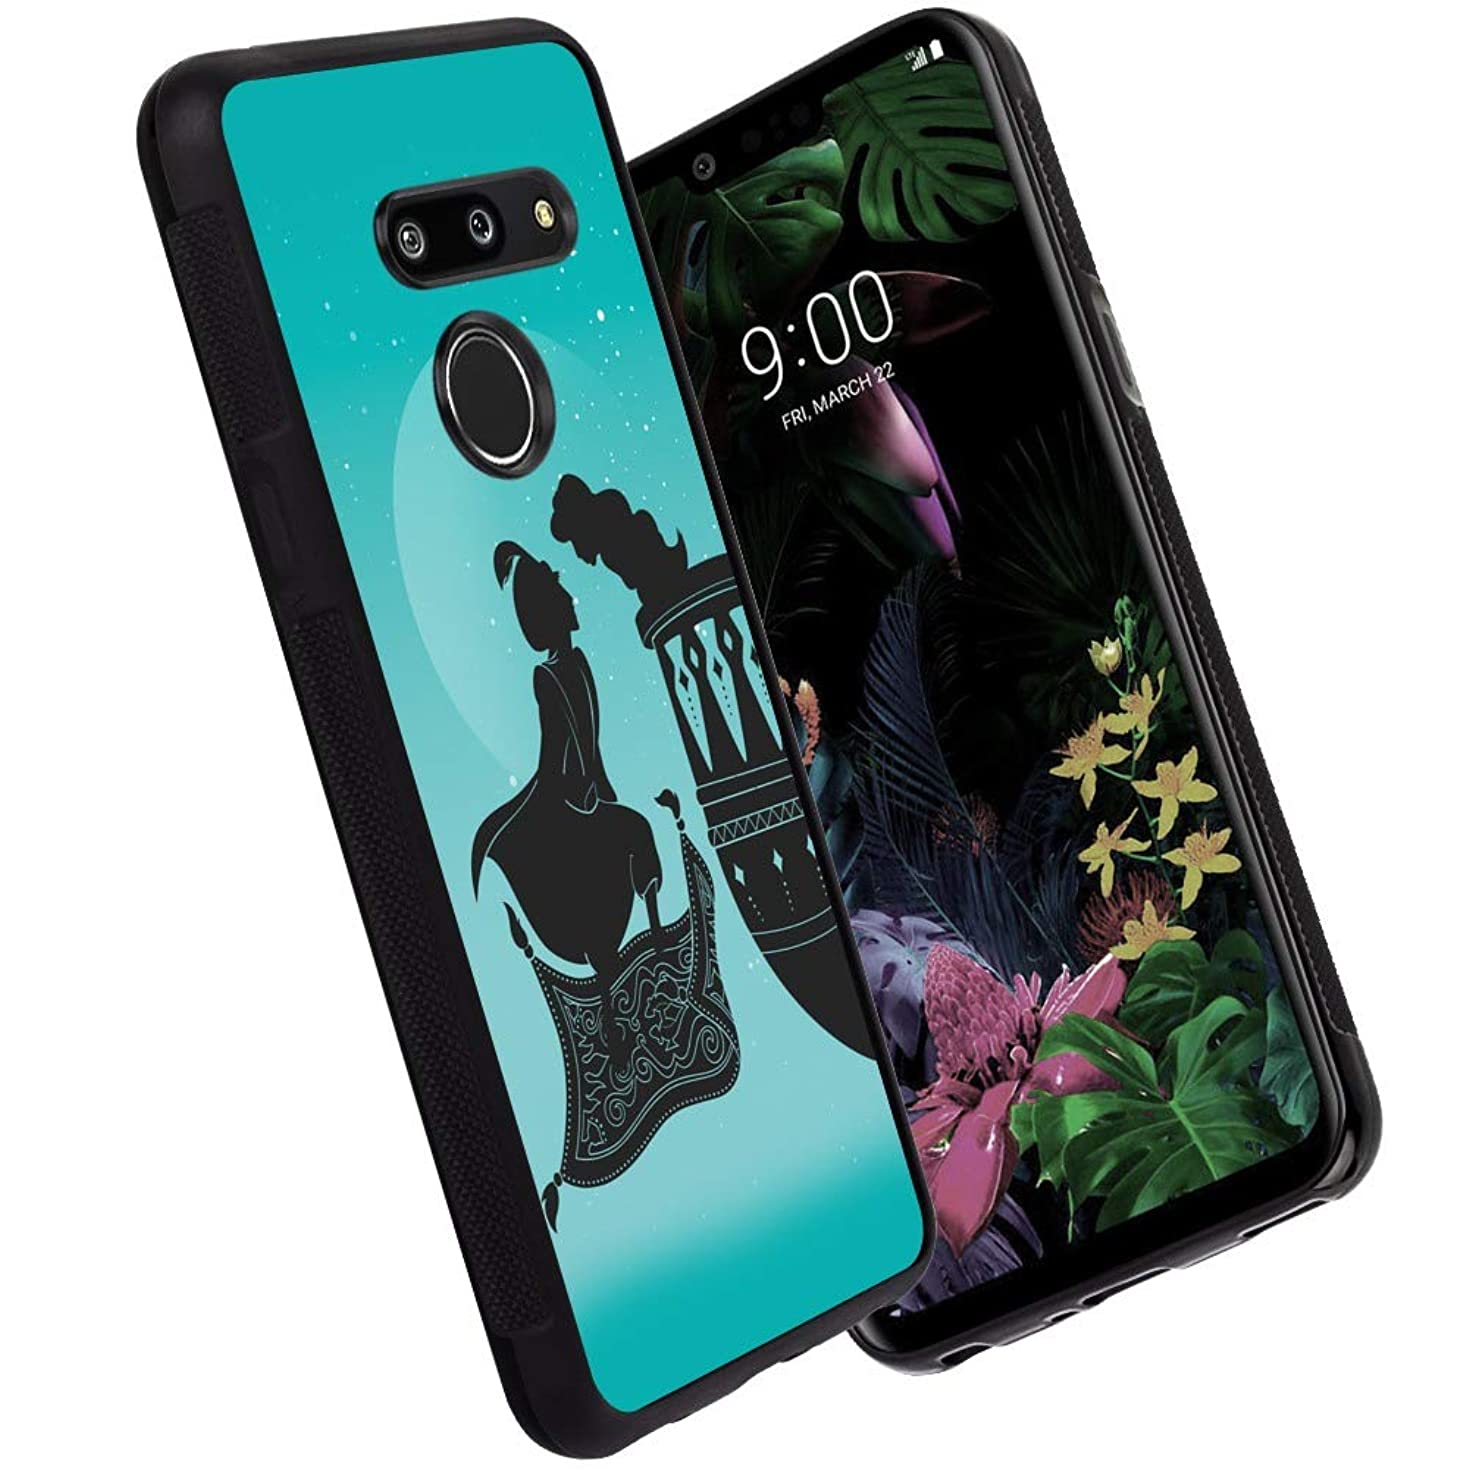 DISNEY COLLECTION Phone Case Compatible LG G8 Aladdin'S Lamp Reinforced Drop Protection Hard PC Back Flexible TPU Bumper Protective Case for LG G8